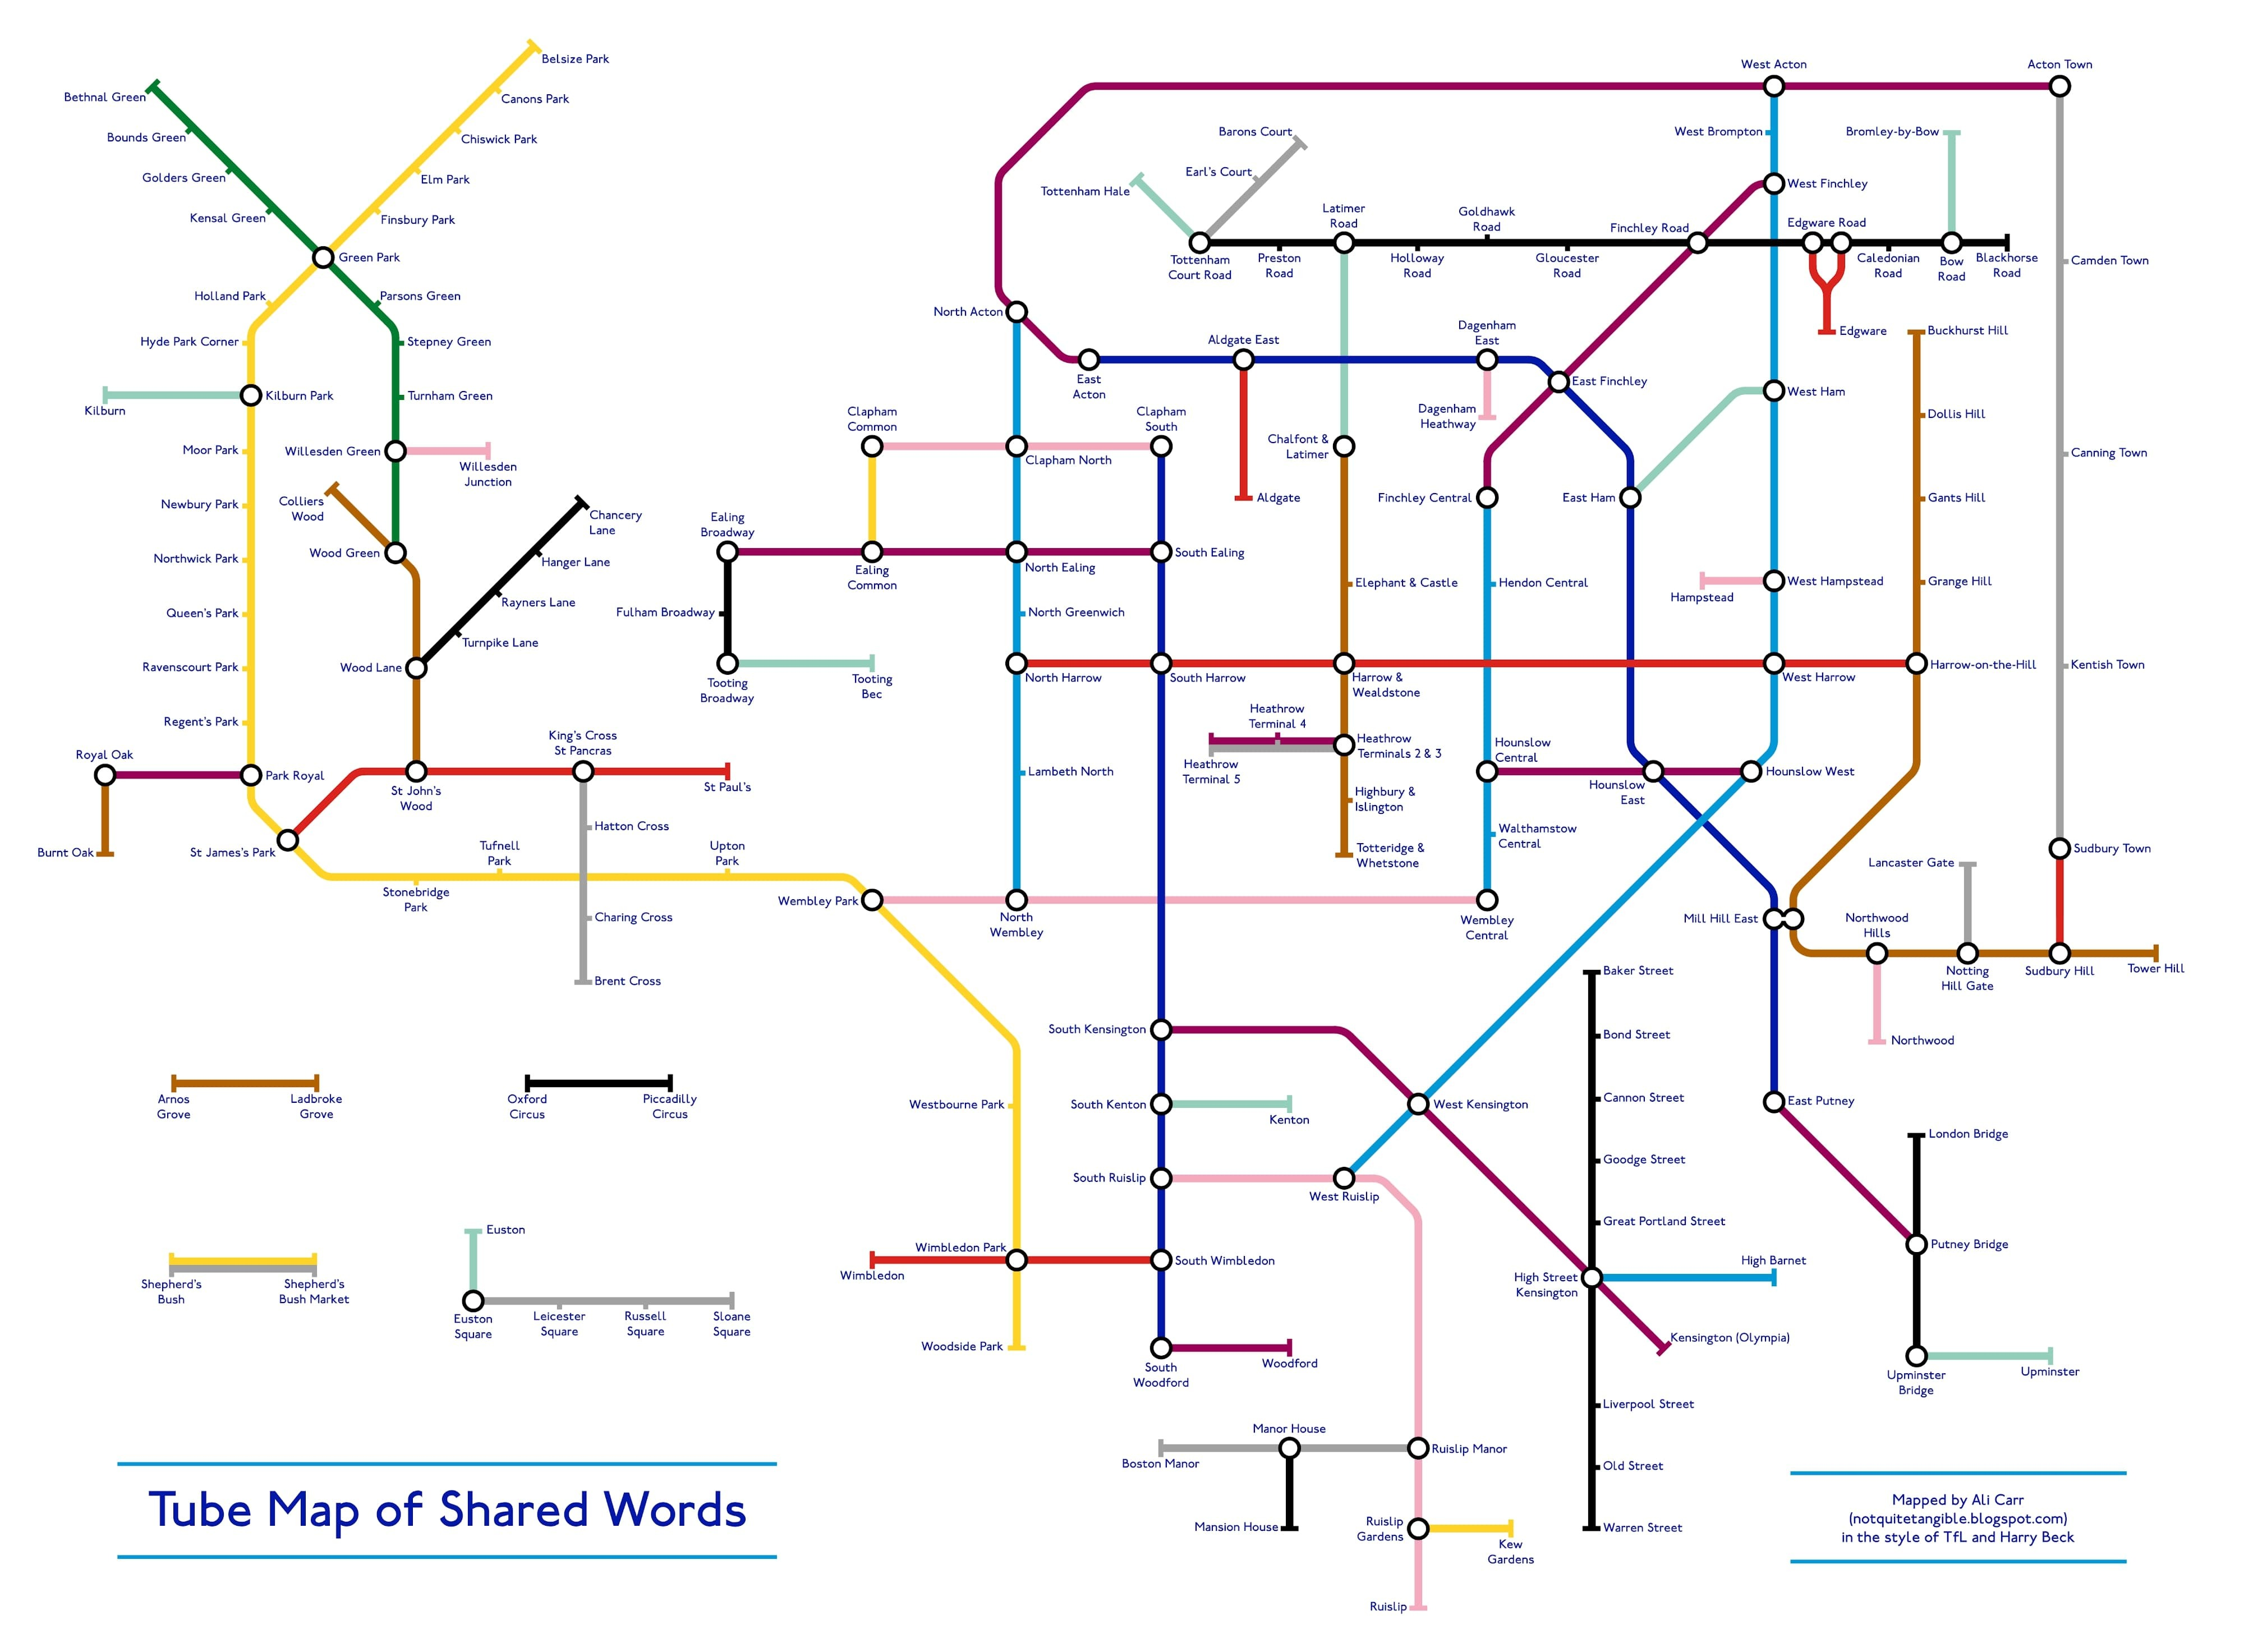 London Subway Map Russell Station.This Tube Map Arranges Stations By Shared Words And It S Pretty